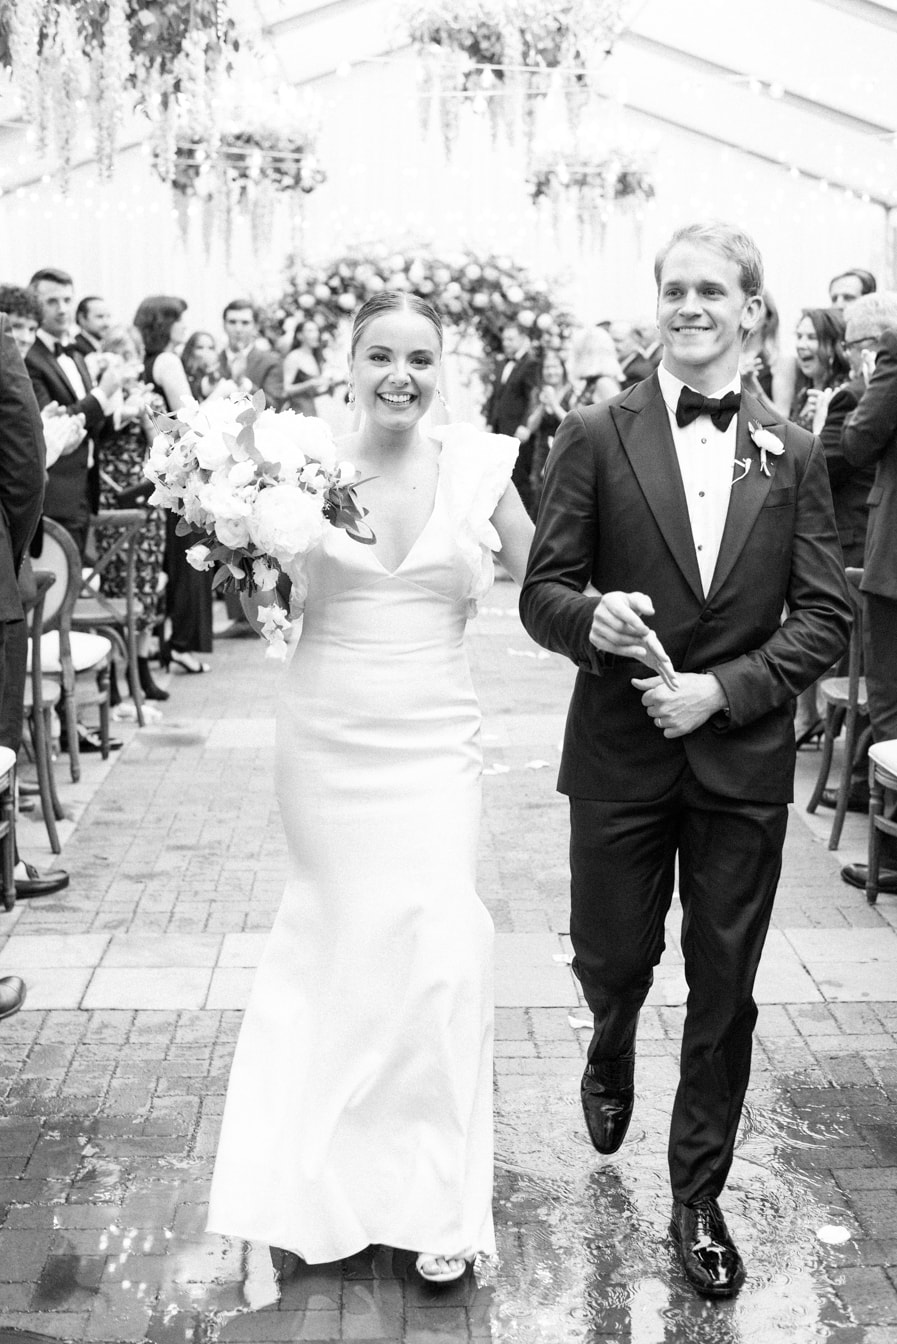 Bride and groom walking down the aisle together after tying their knot